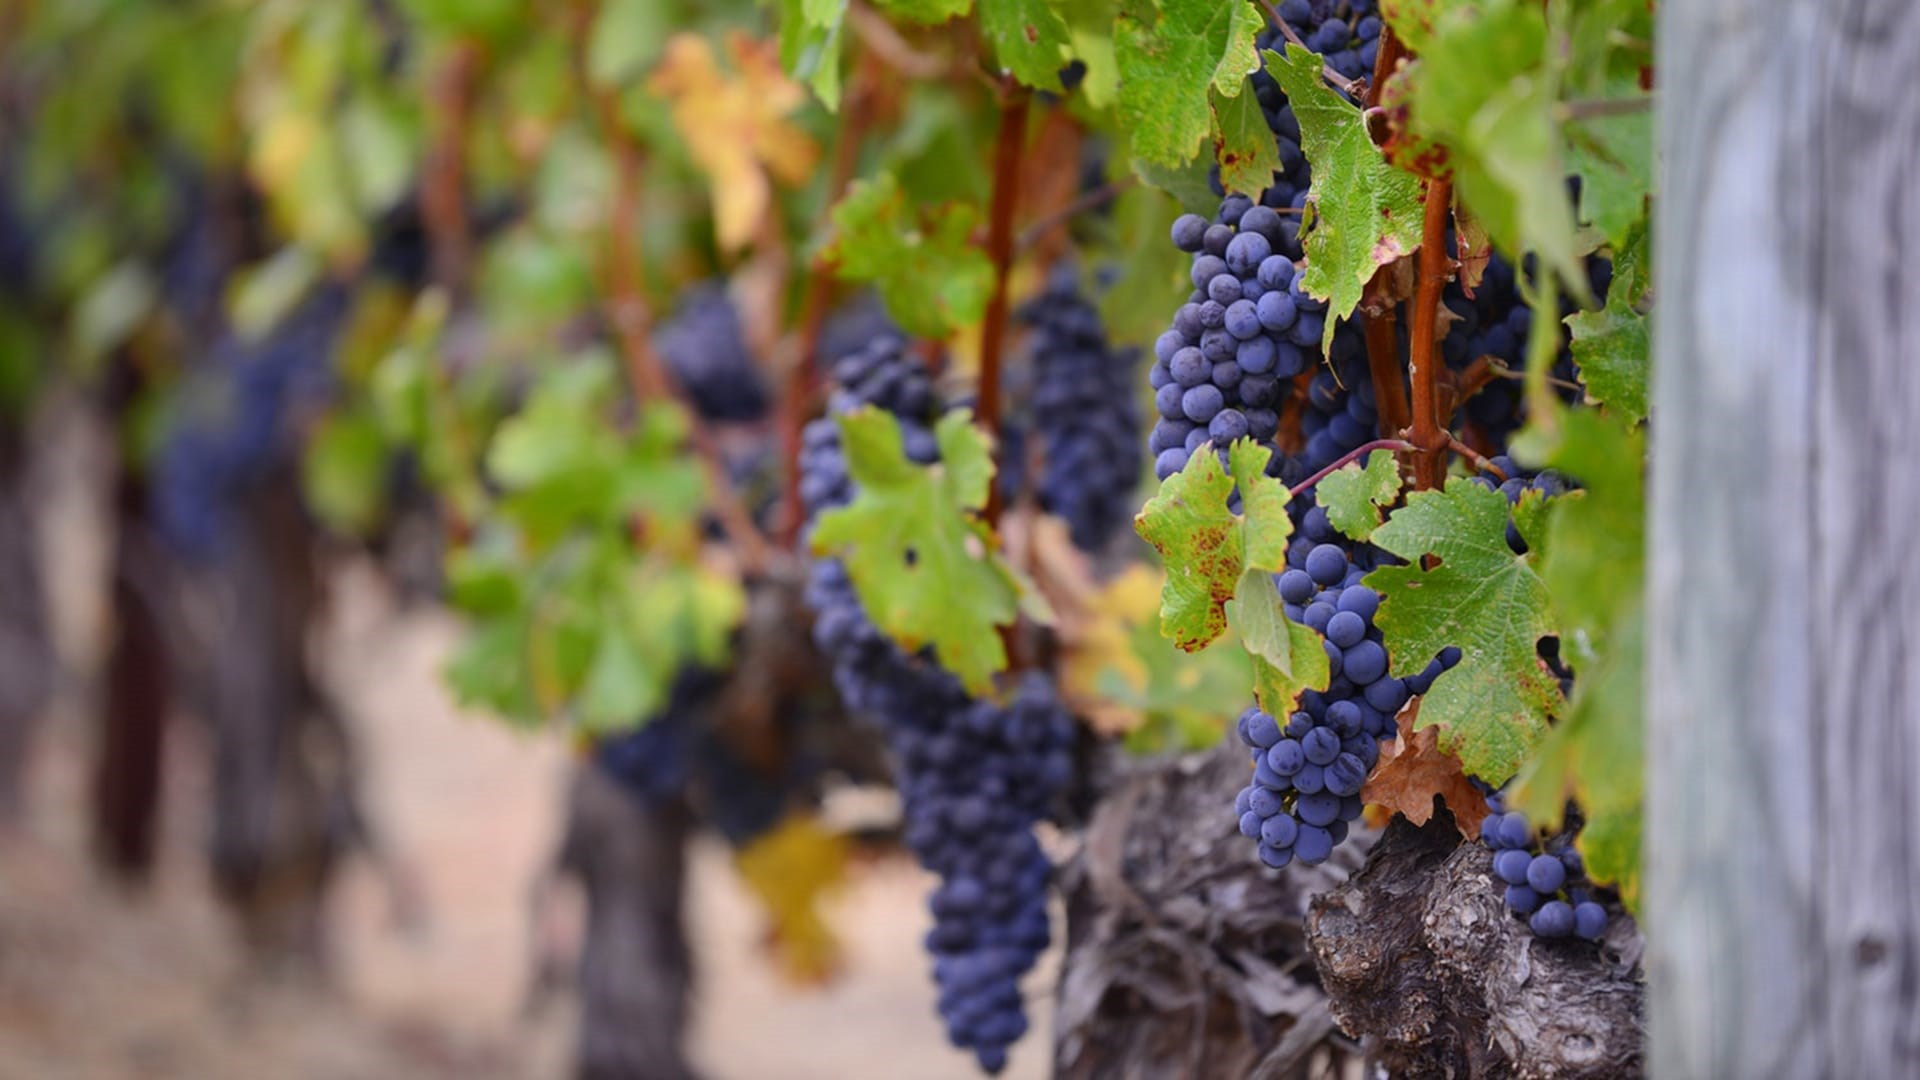 Vitis vinifera is the most widespread species in wine production